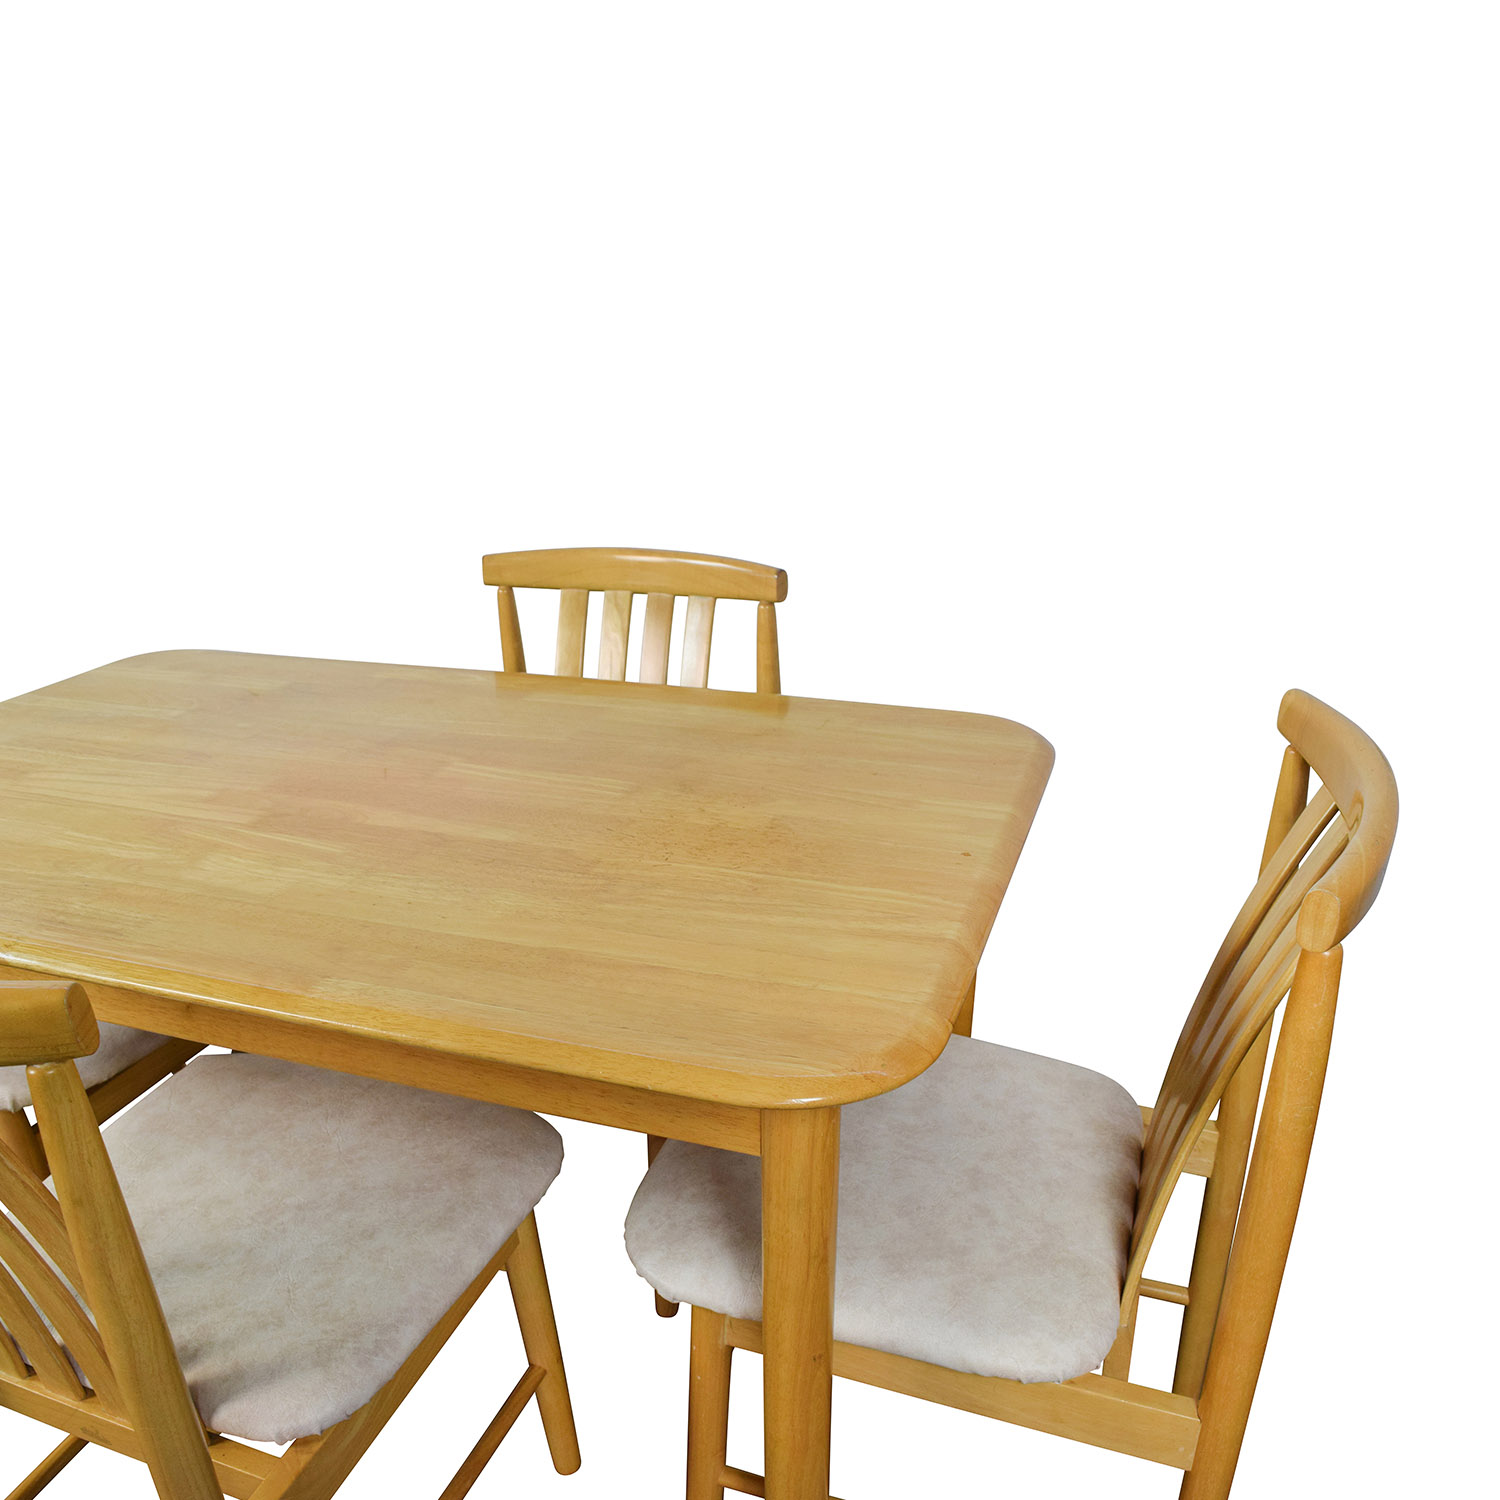 Light Wood Dining Table with Four Chairs discount